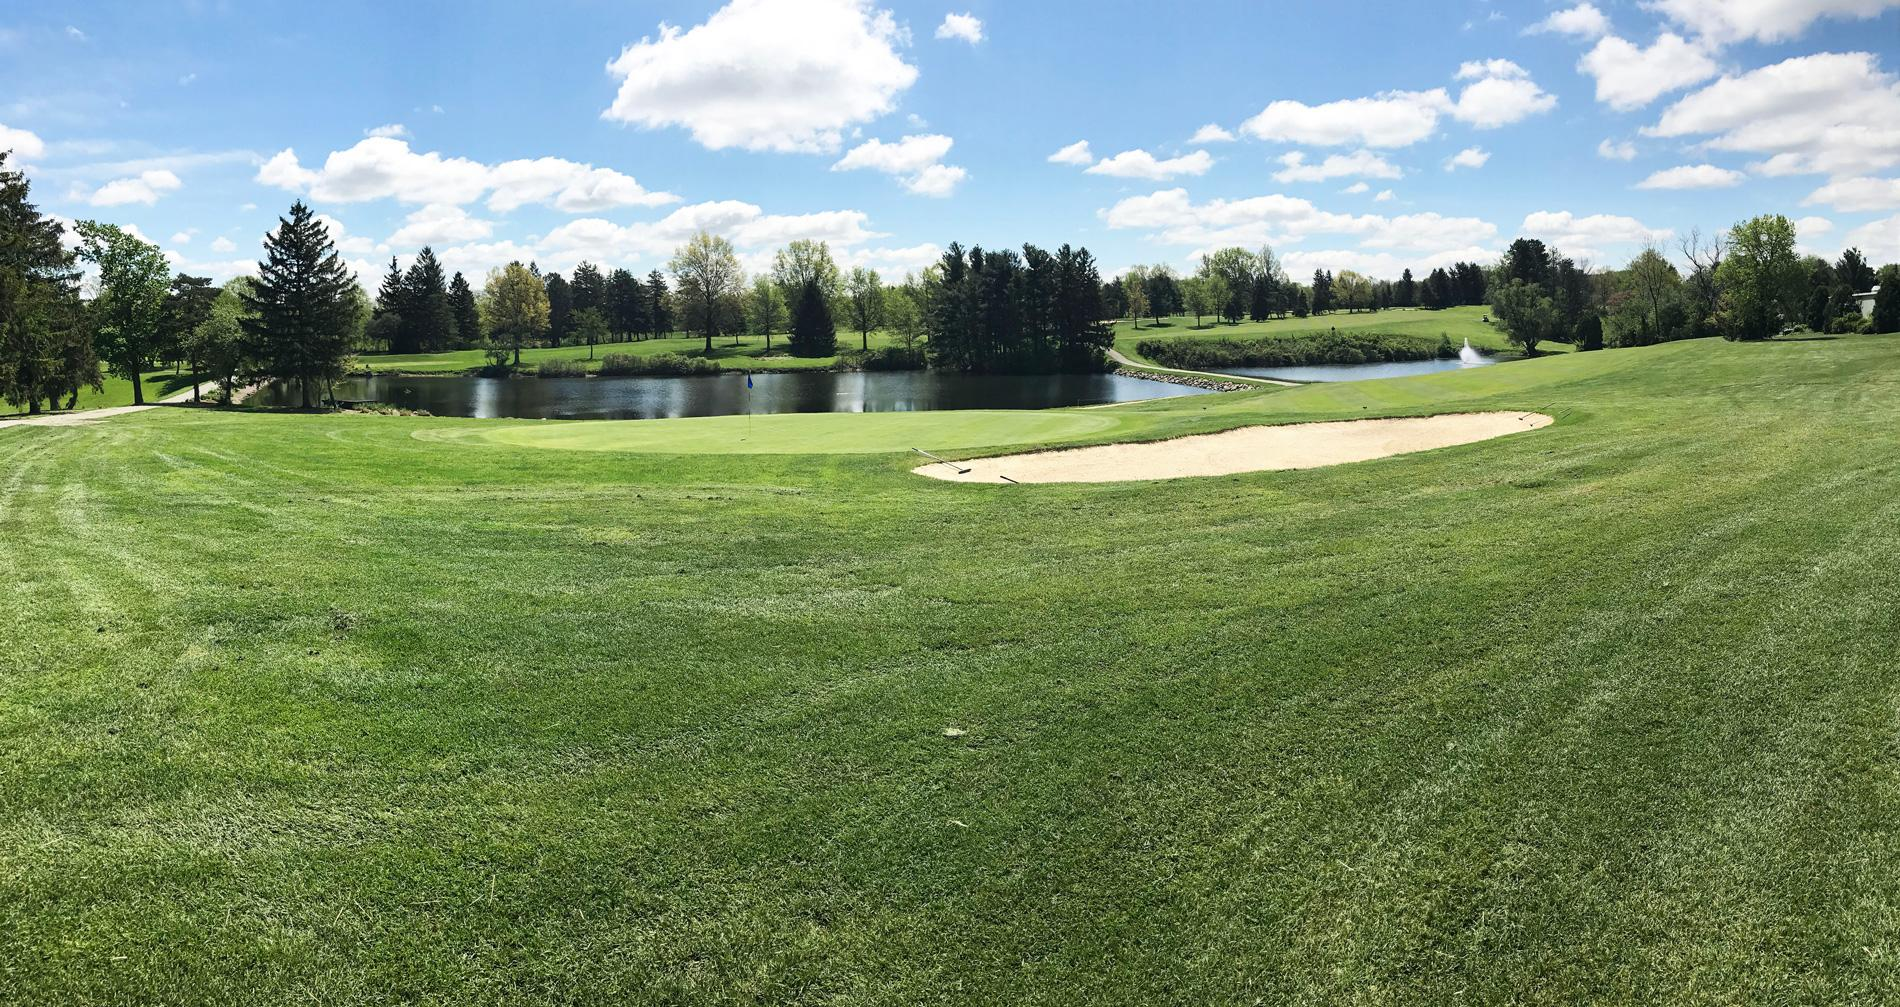 A Public Golf Course with Country Club Conditions and Hospitality